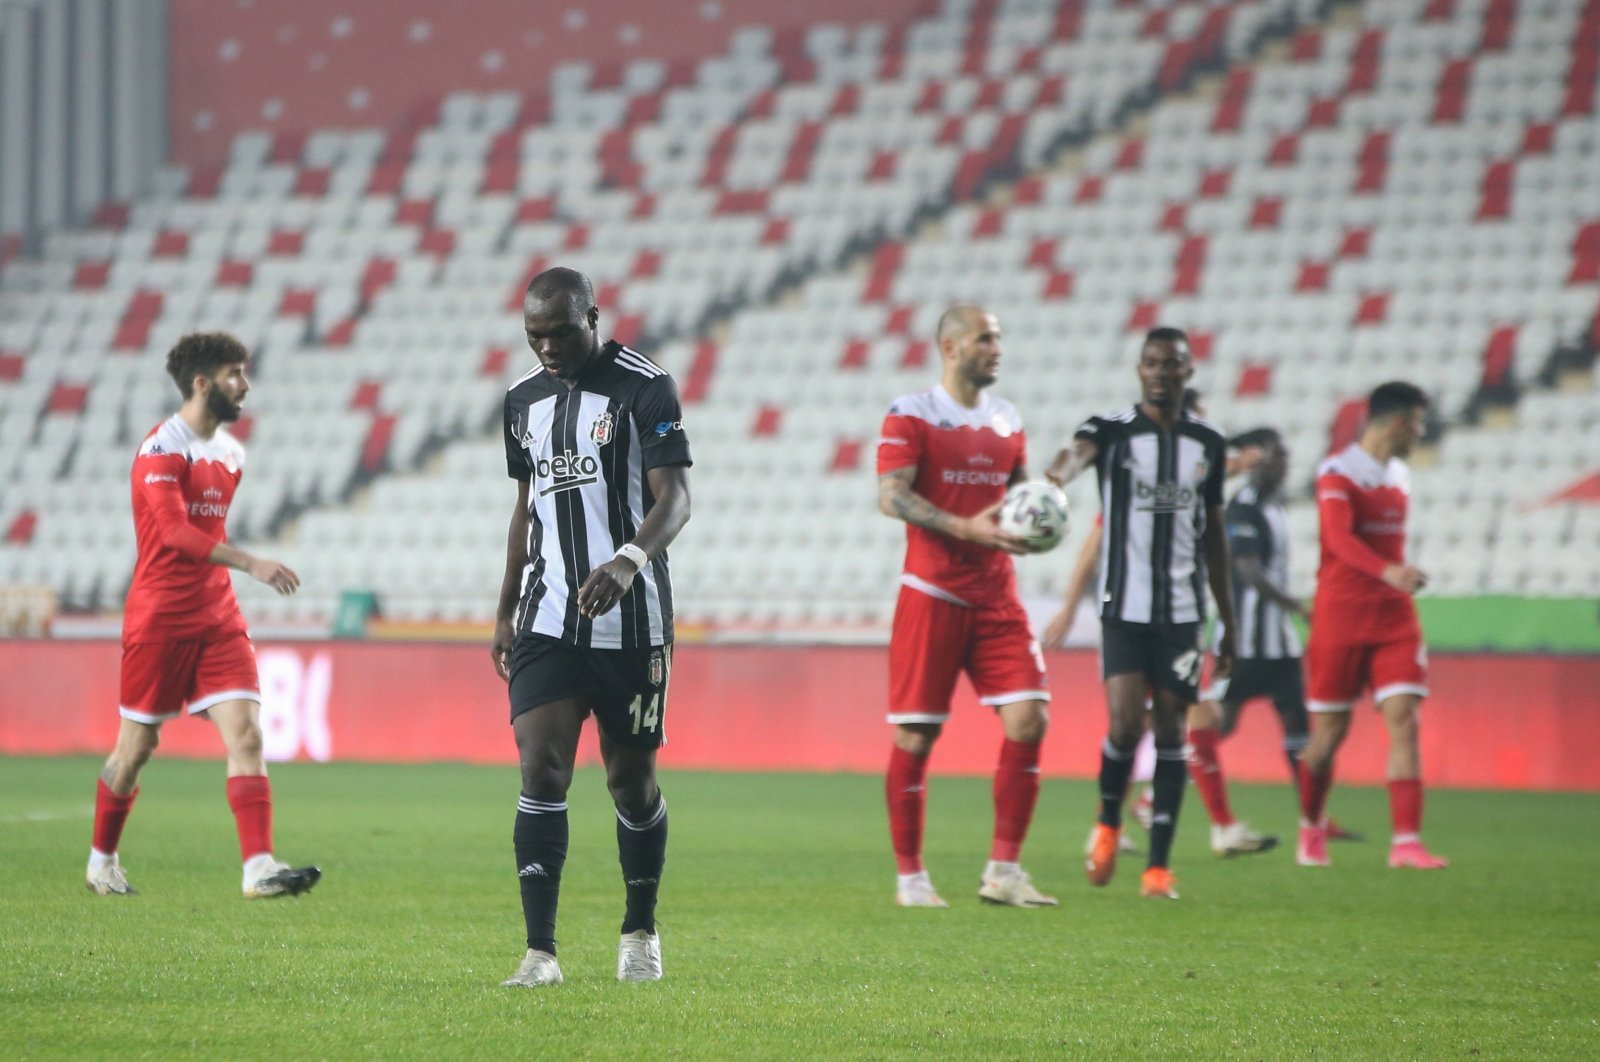 Beşiktaş's Vincent Aboubakar (2-L) walks out of the pitch at the end of the Turkish Süper Lig match in Antalya, Feb. 3, 2021 (AA Photo)